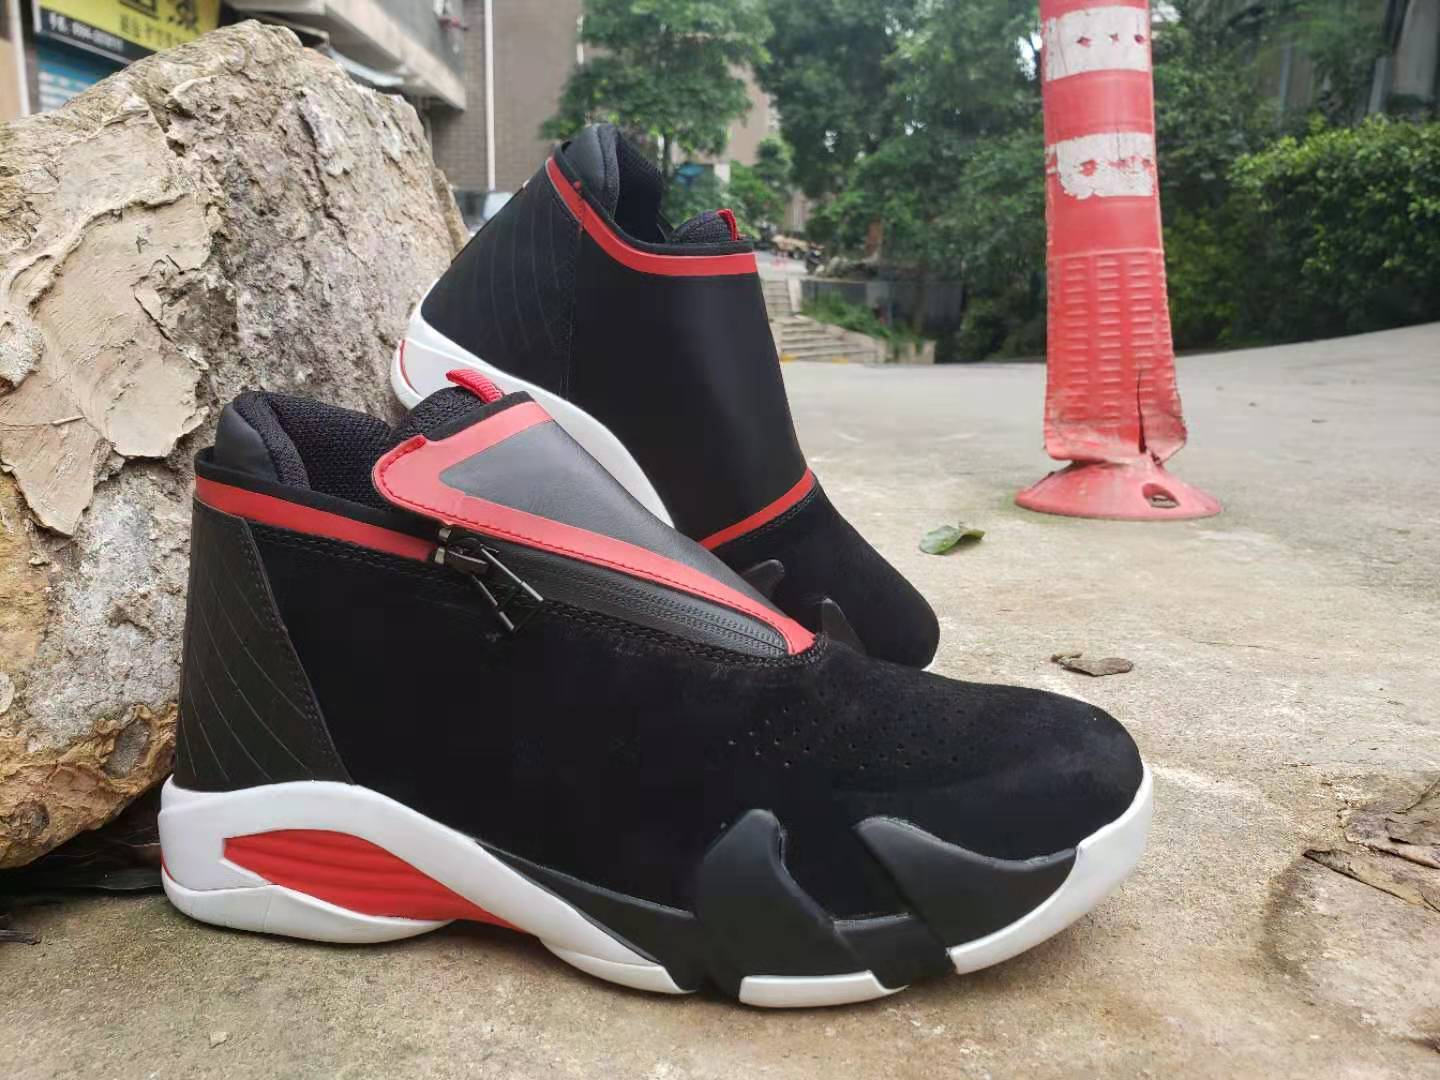 New 2019 Air Jordan 14 Retro Zipper Black Red